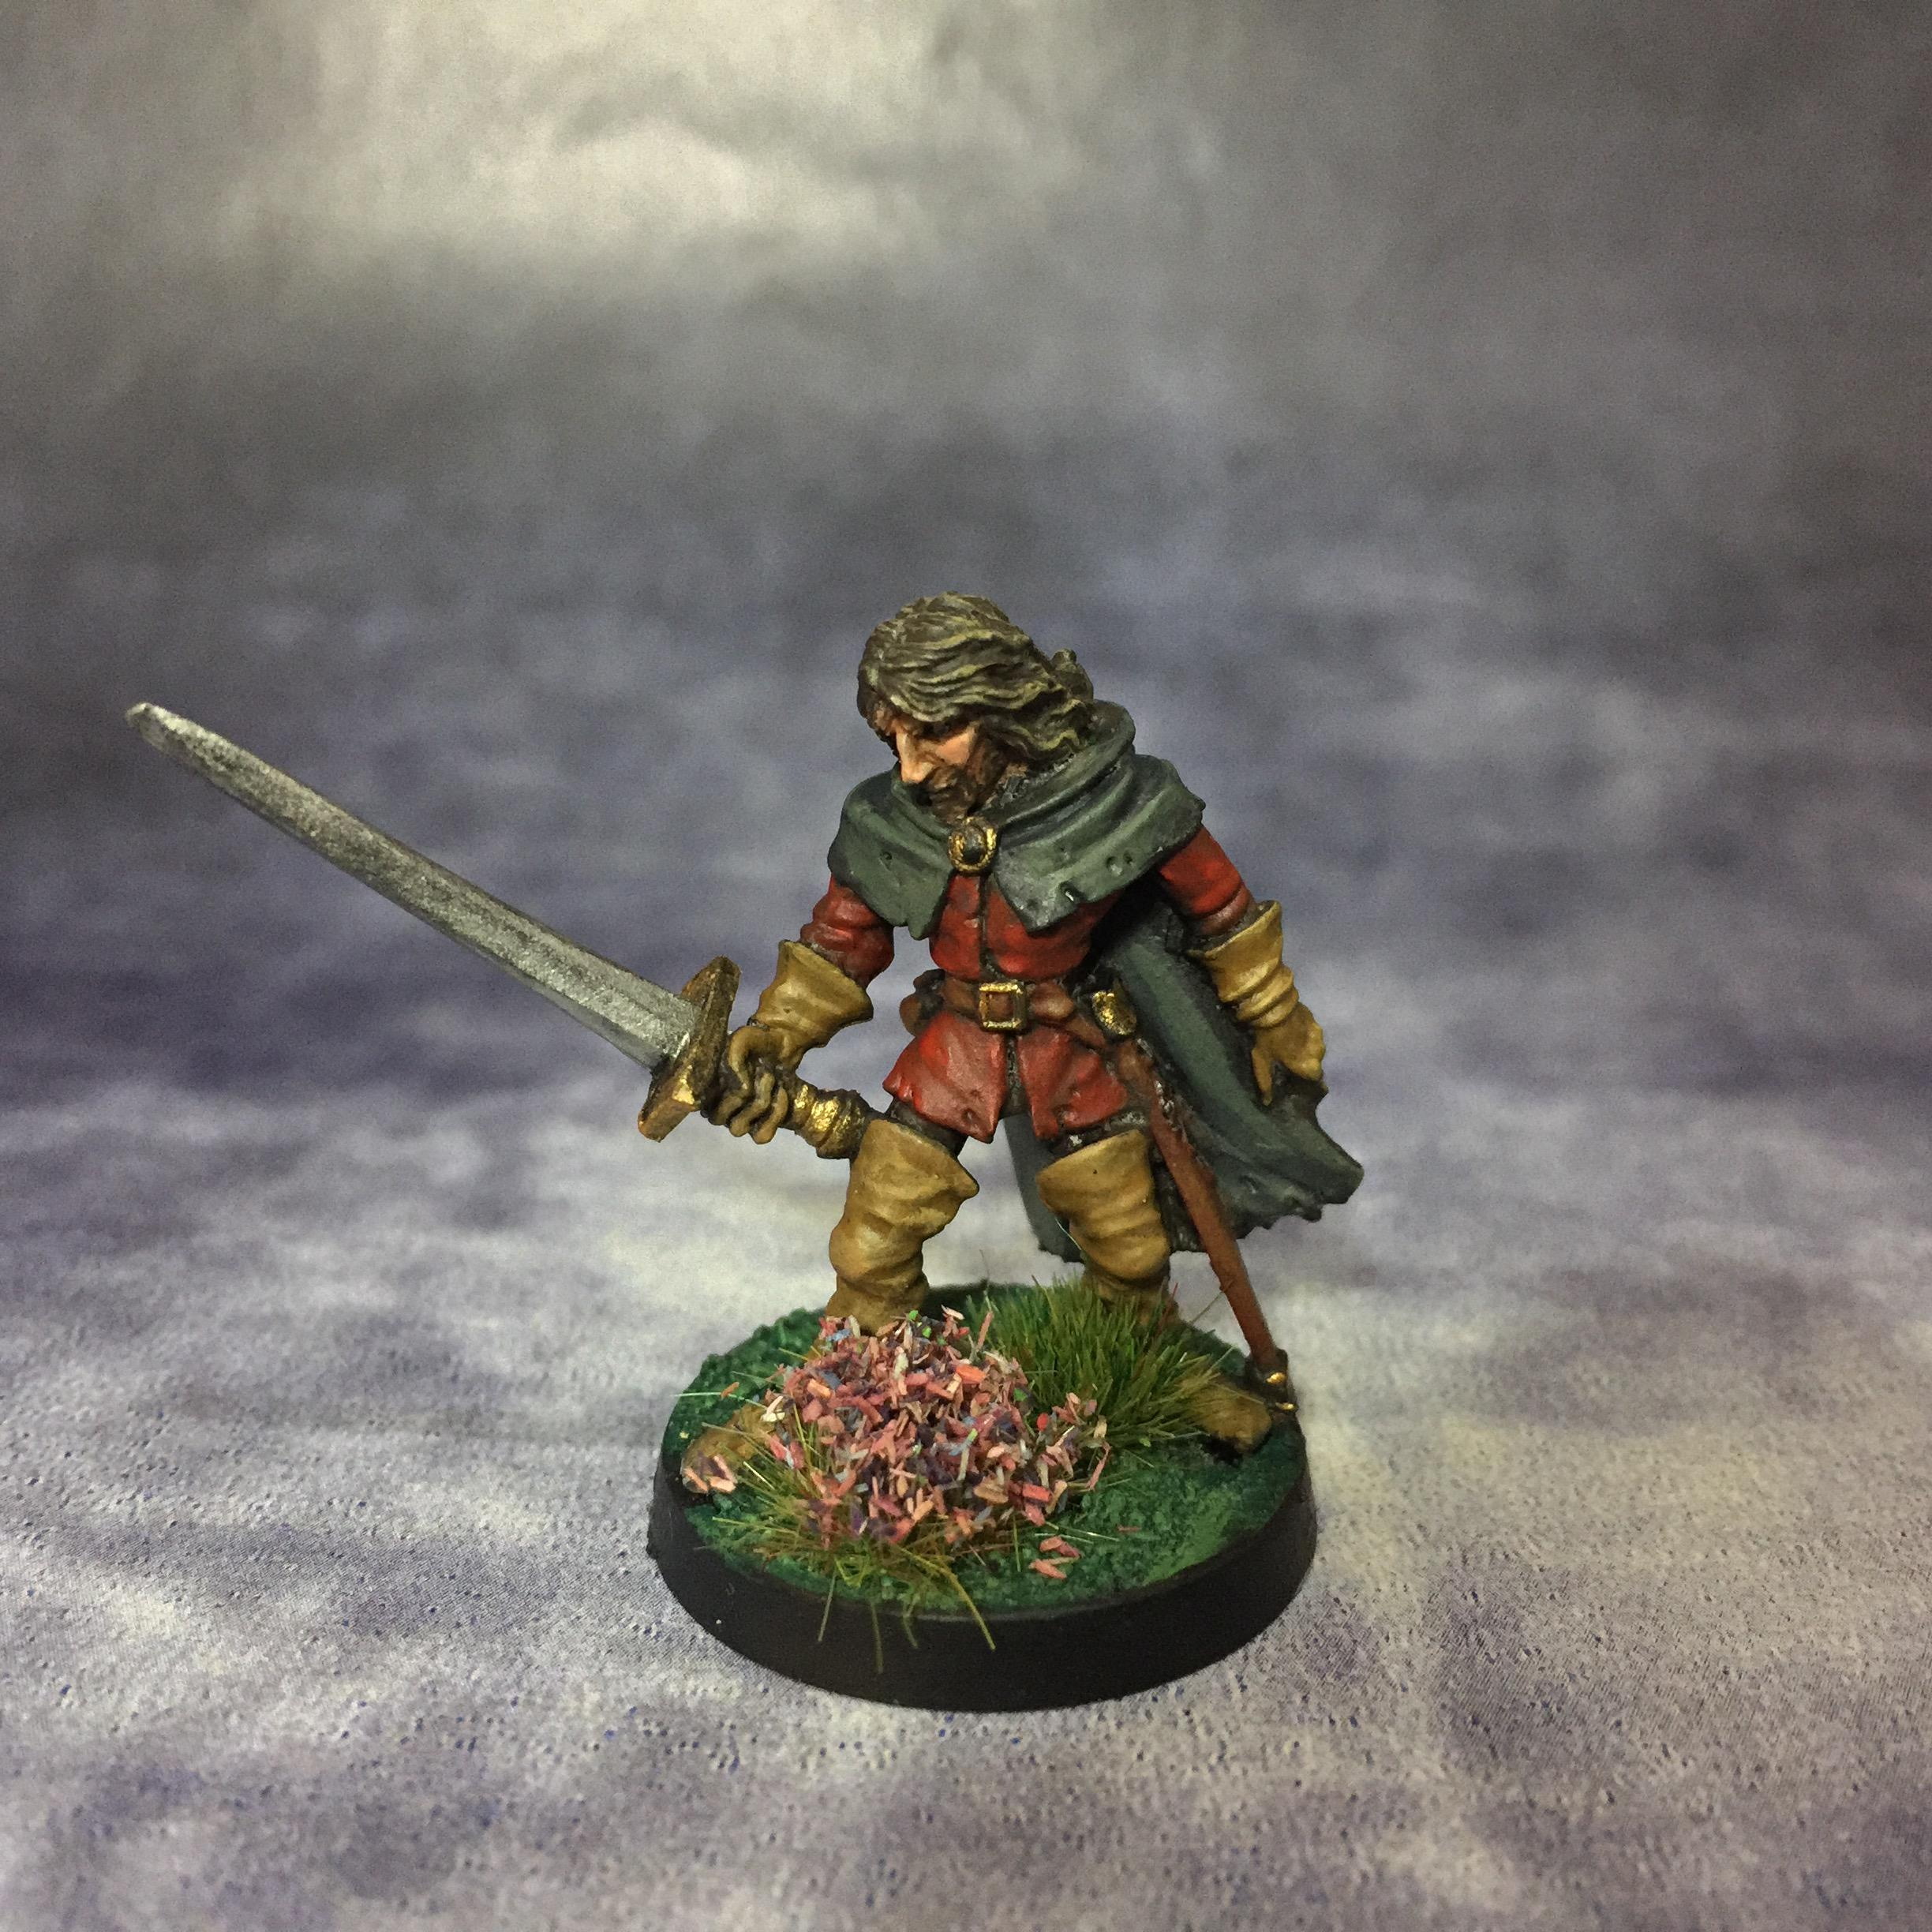 Aragorn, Citadel, Elves, Games Workshop, Jes Goodwin, Lord Of The Rings, May 2018, Oldhammer